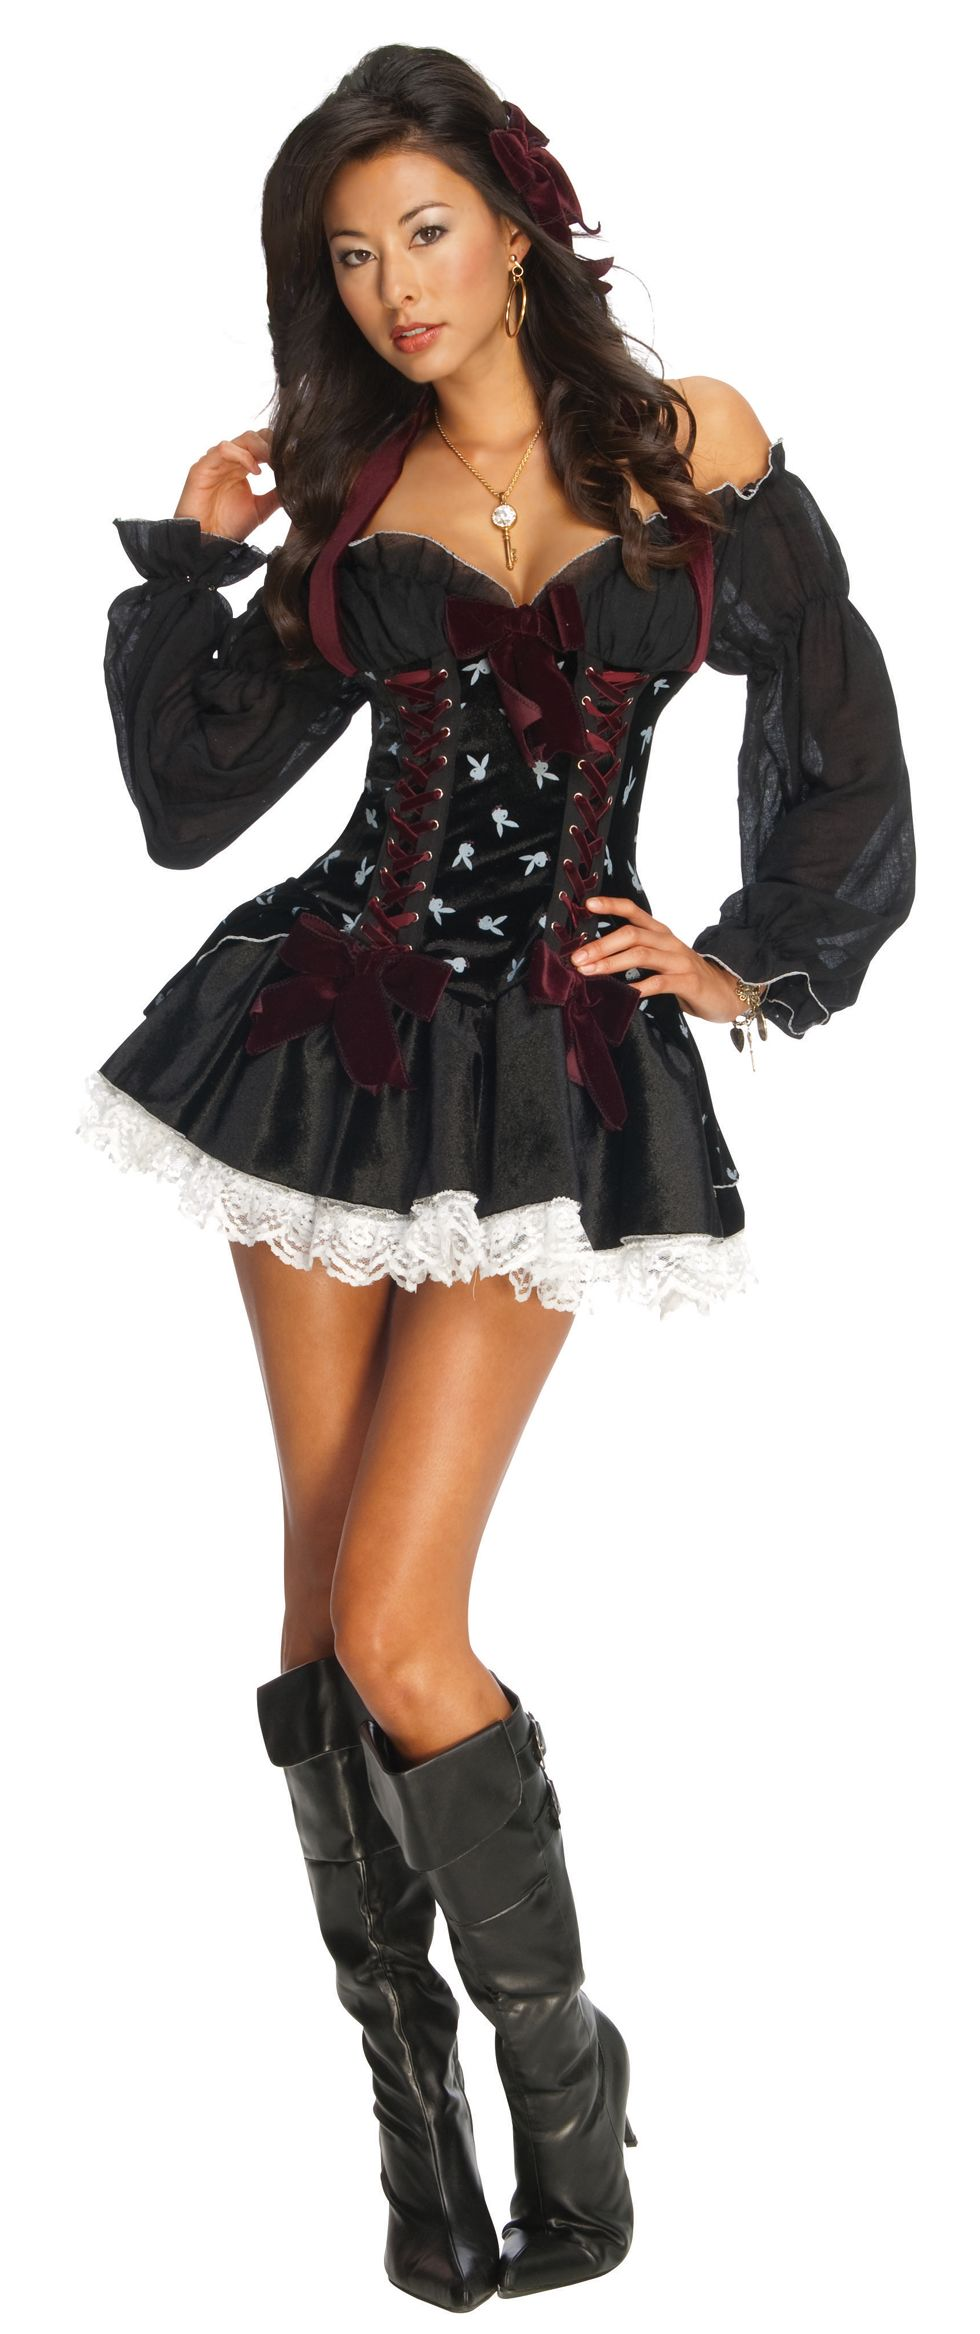 D guisement cavali re sexy playboy costume baroque femme saint valentin - Deguisement halloween sexy ...